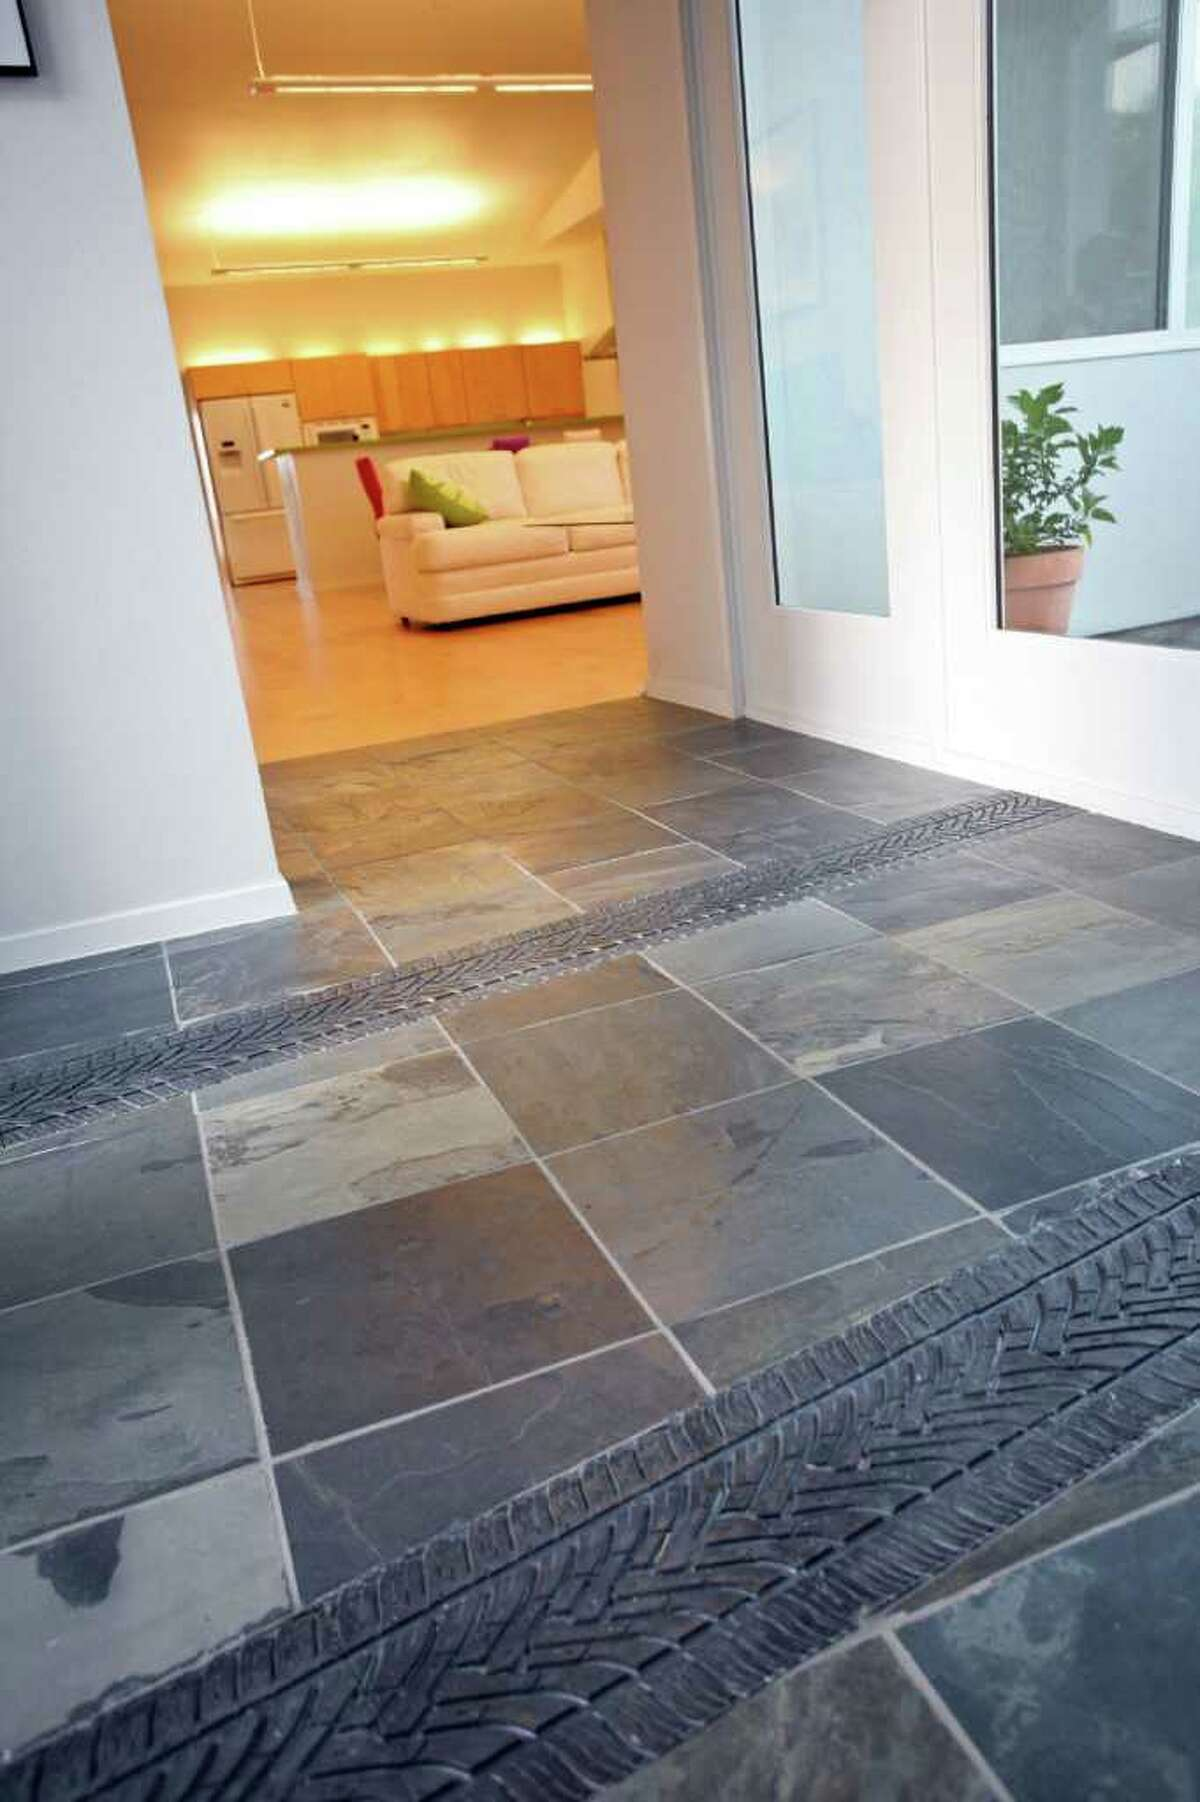 Tile tire tracks add interest to the slate floor in the entry, an idea from a magazine.